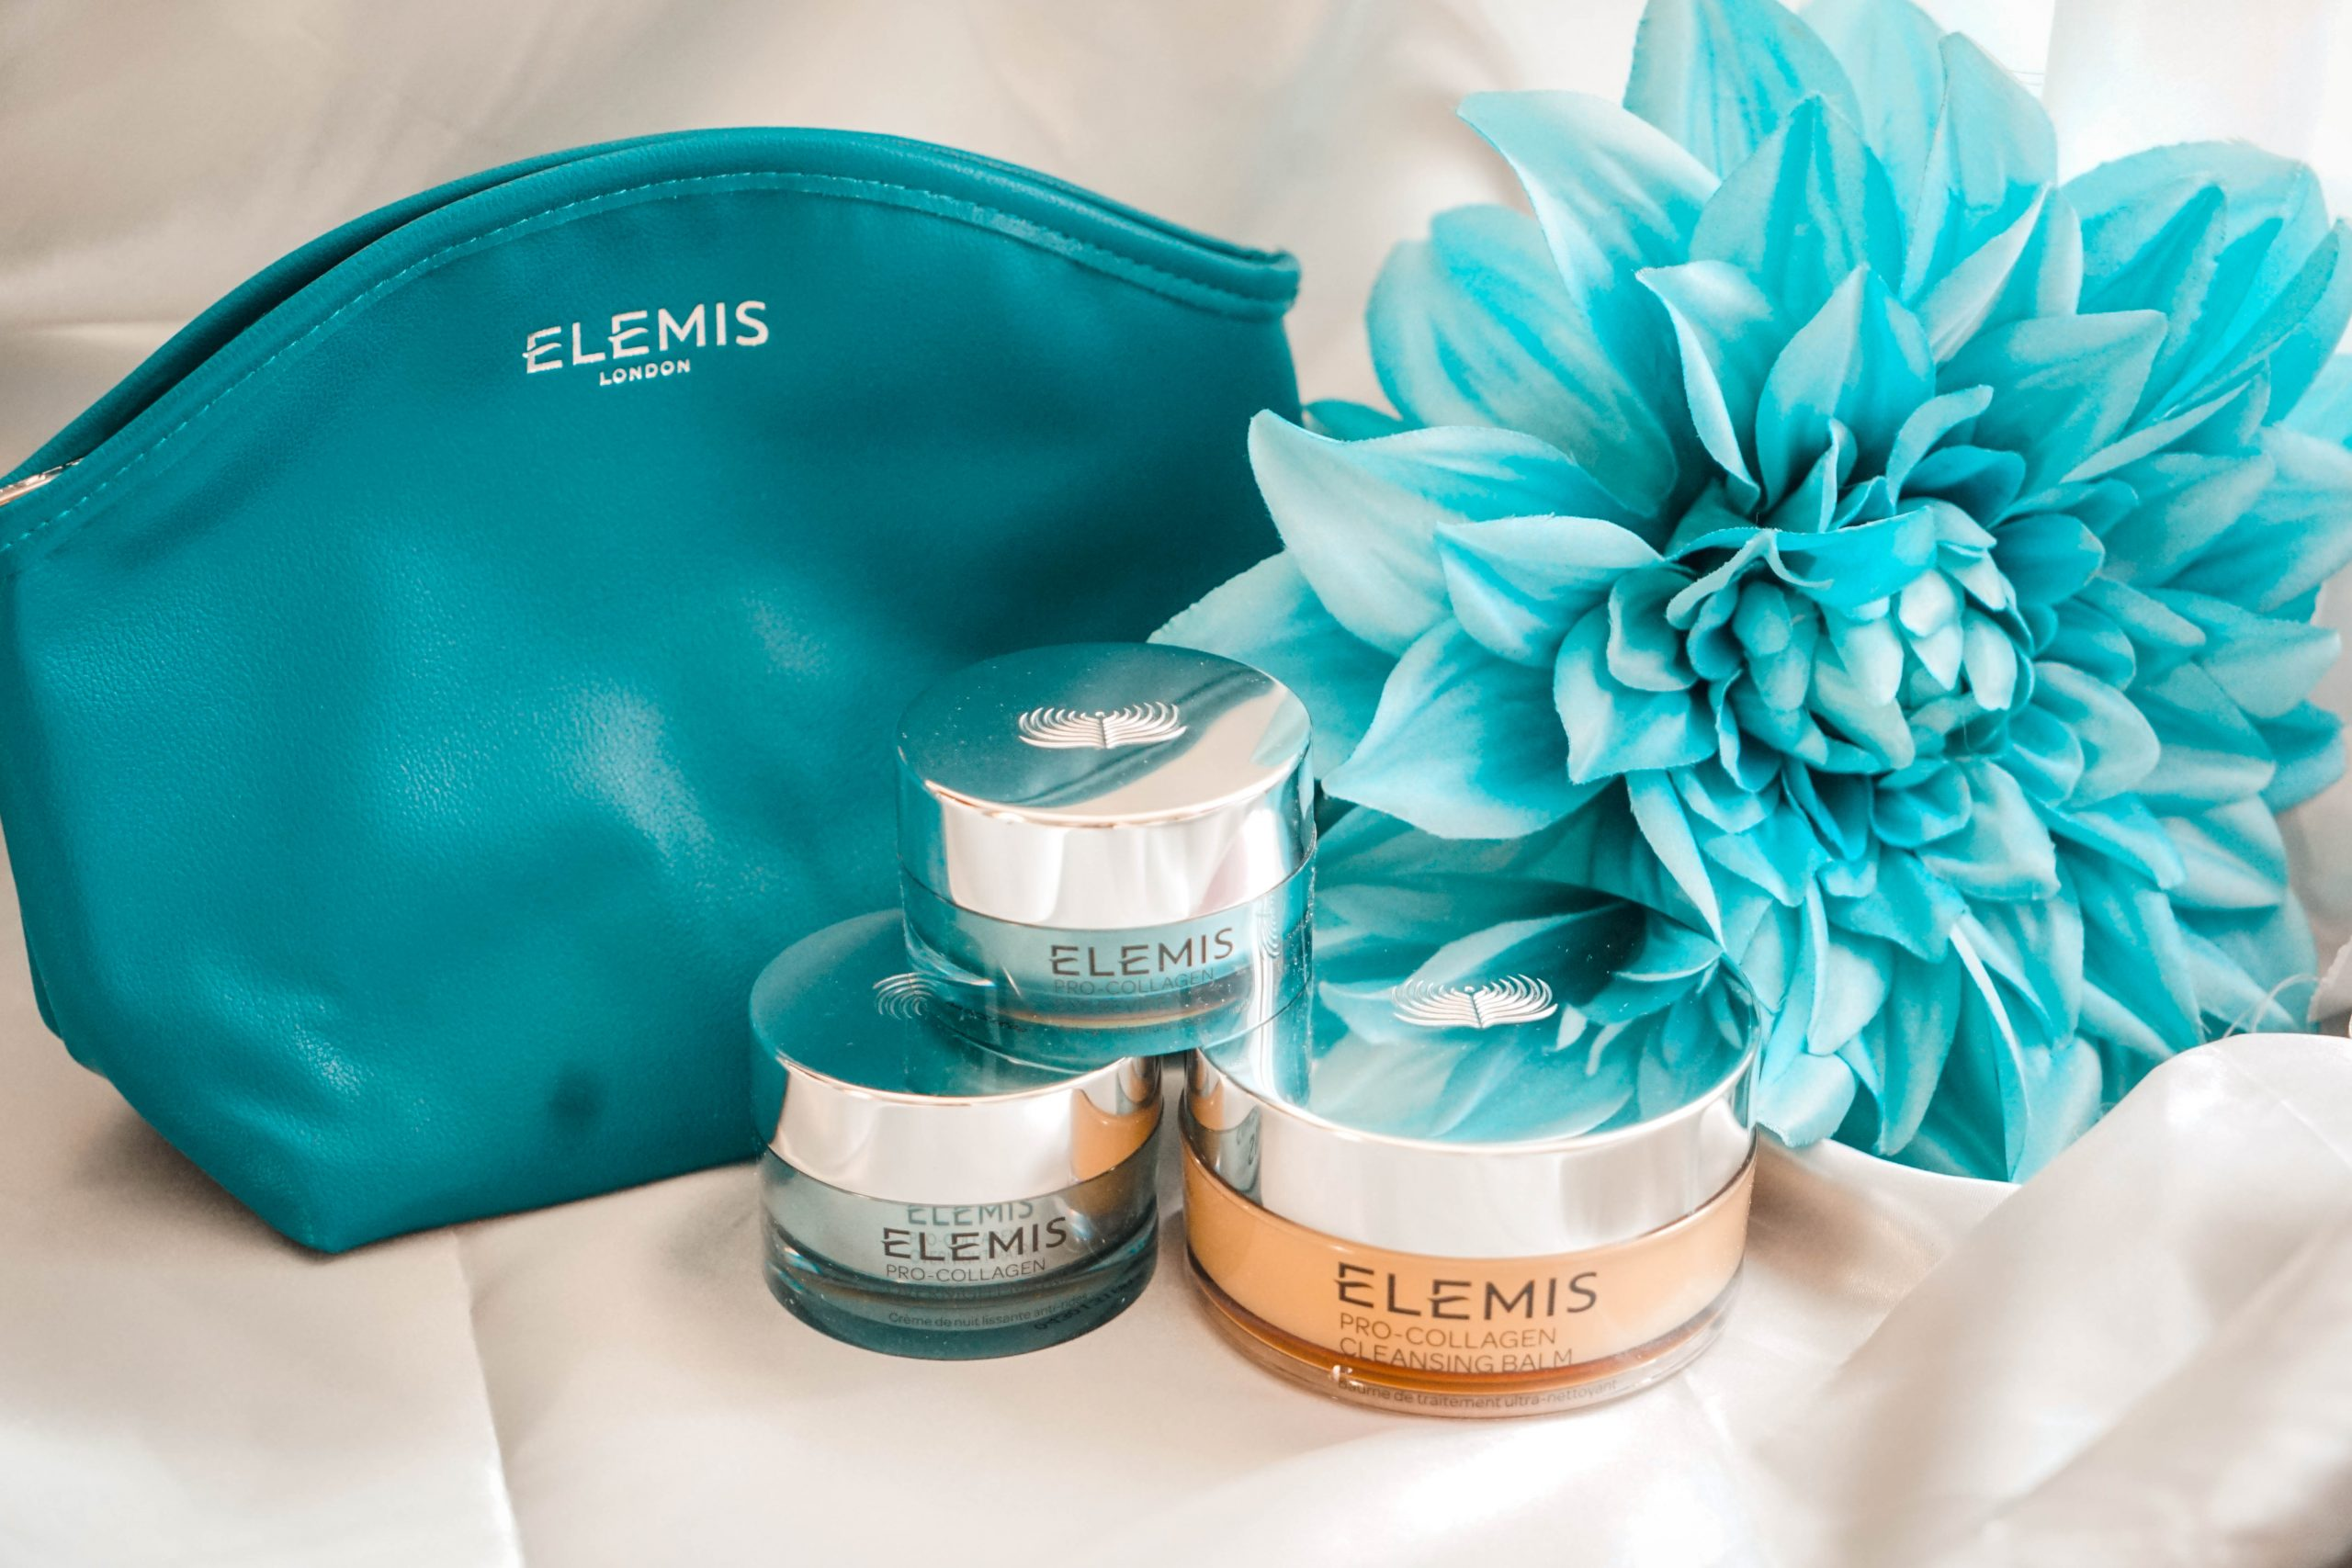 QVC UK TSV Elemis Pro-Collagen Powerhouse Heroes Collection